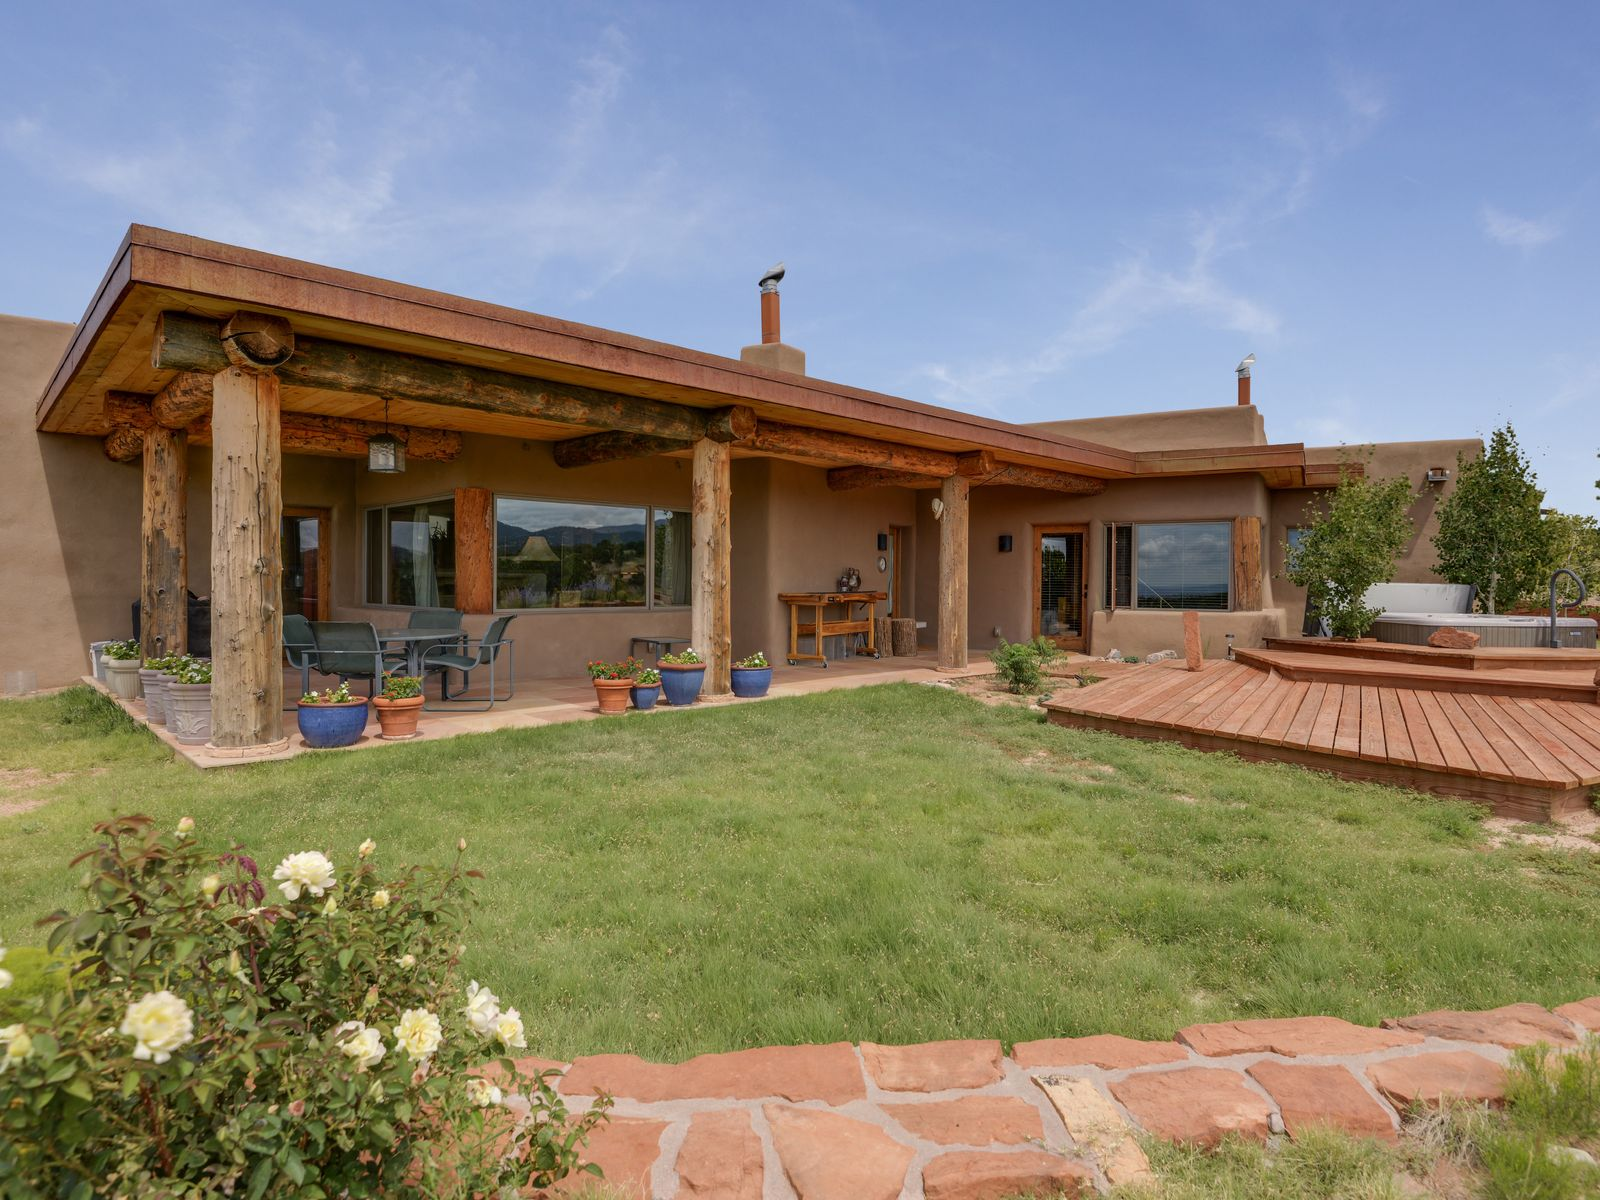 54 Vereda Serena, Santa Fe NM Single Family Home - Santa Fe Real Estate